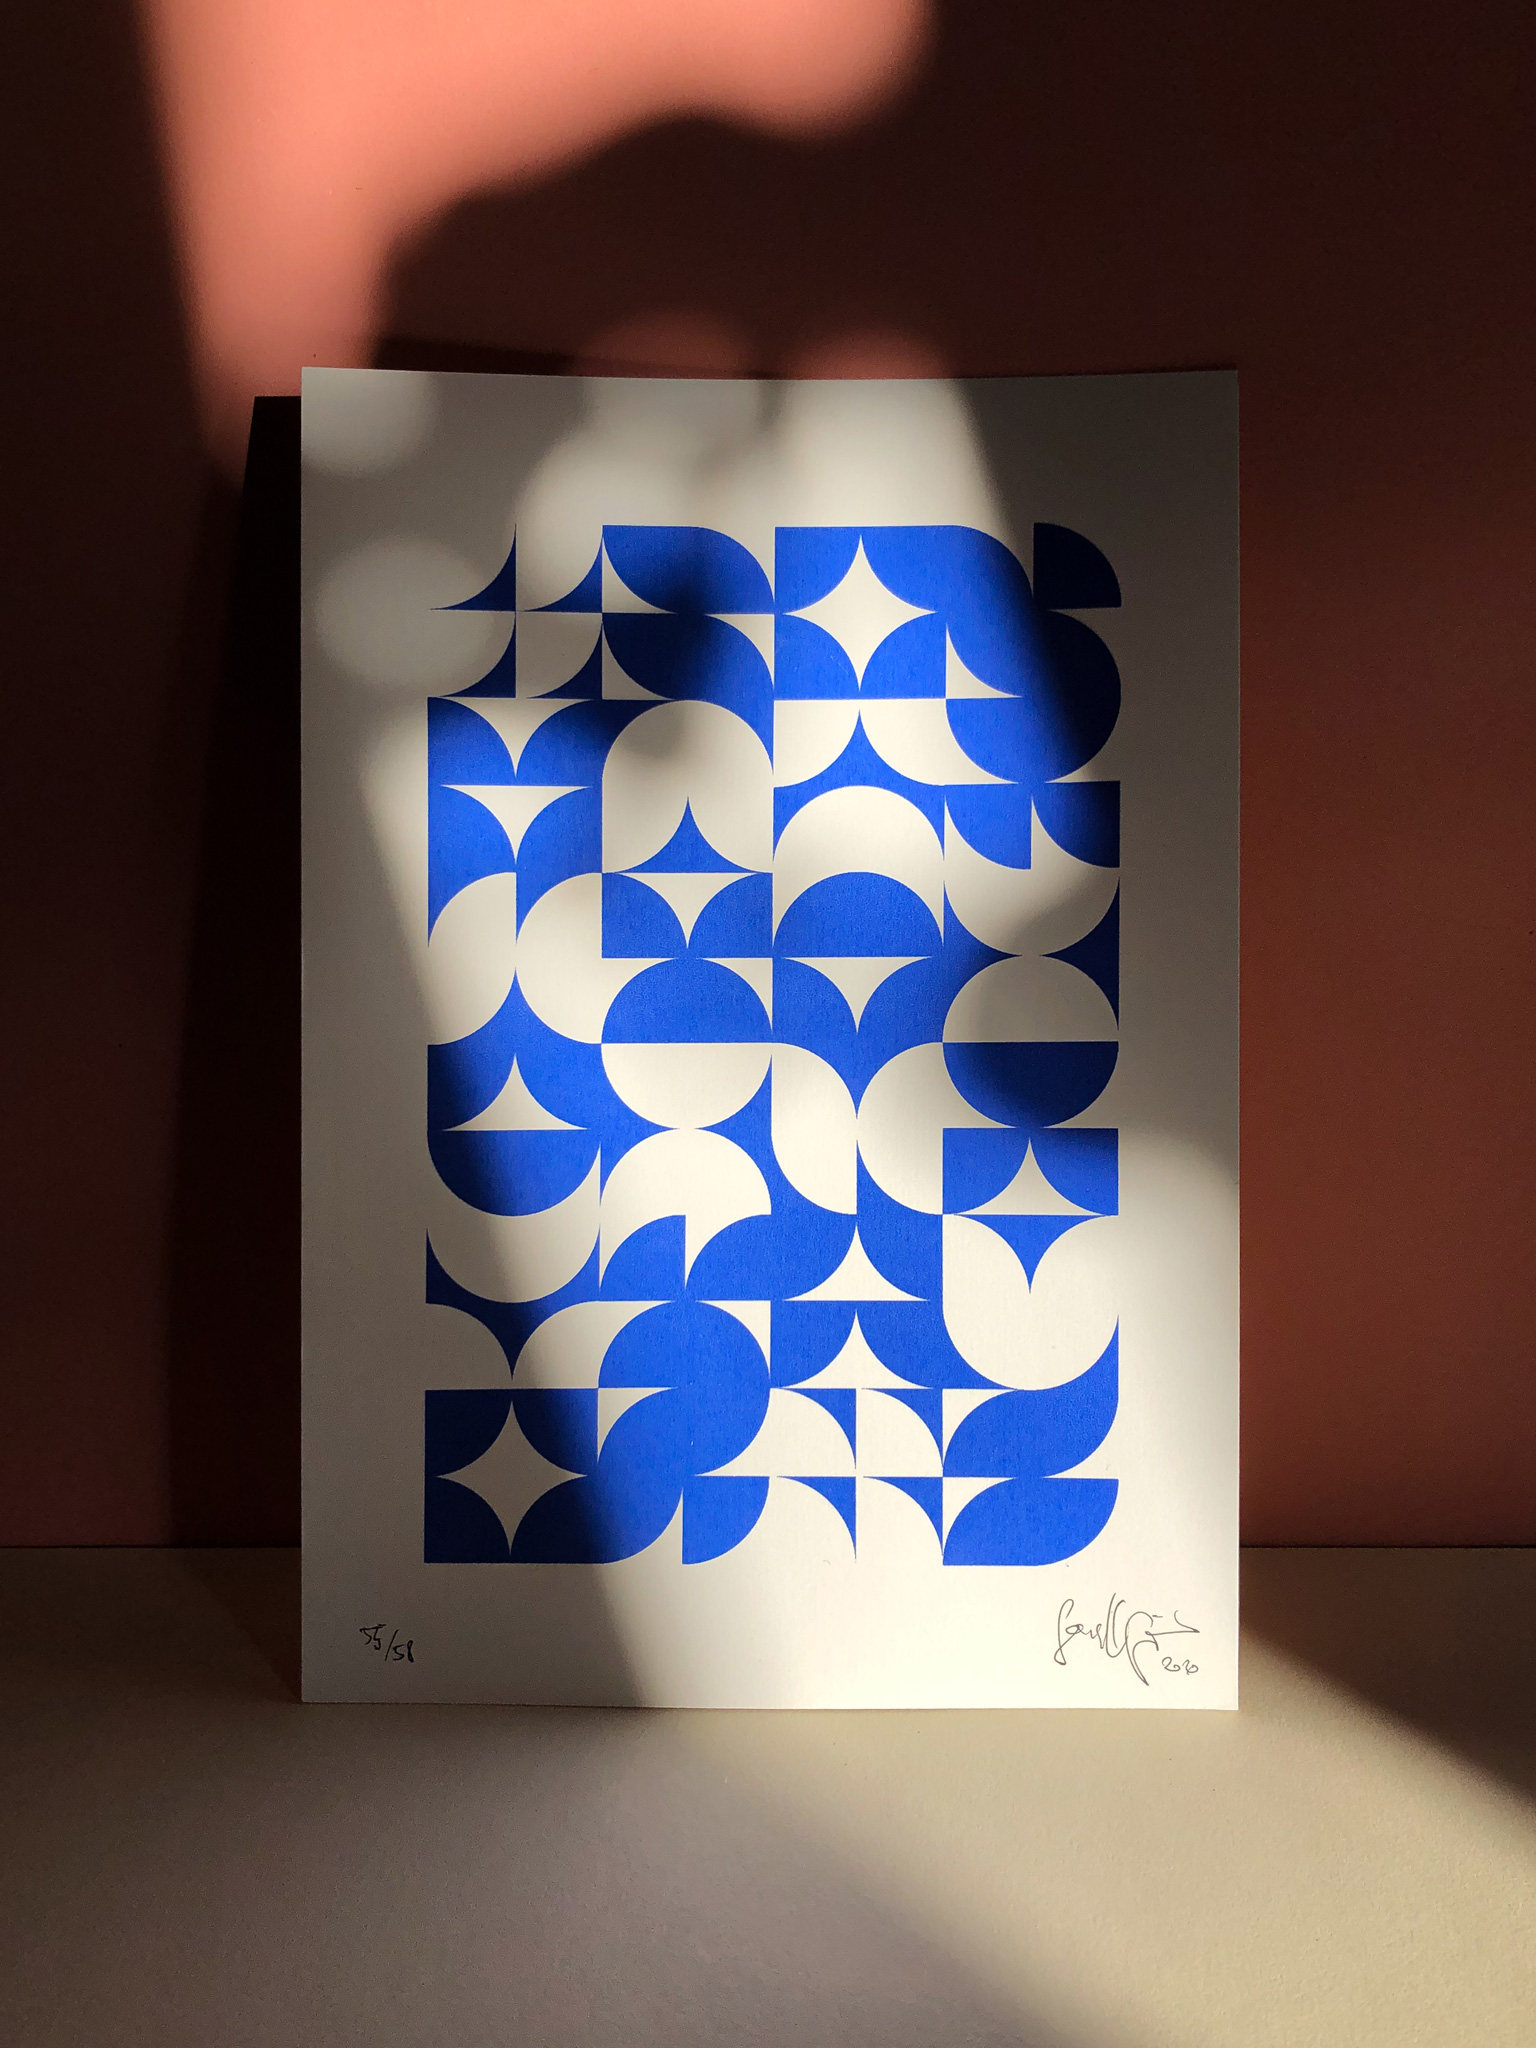 Screenprint on white paper, shown on colorful background, illuminated by the sun.